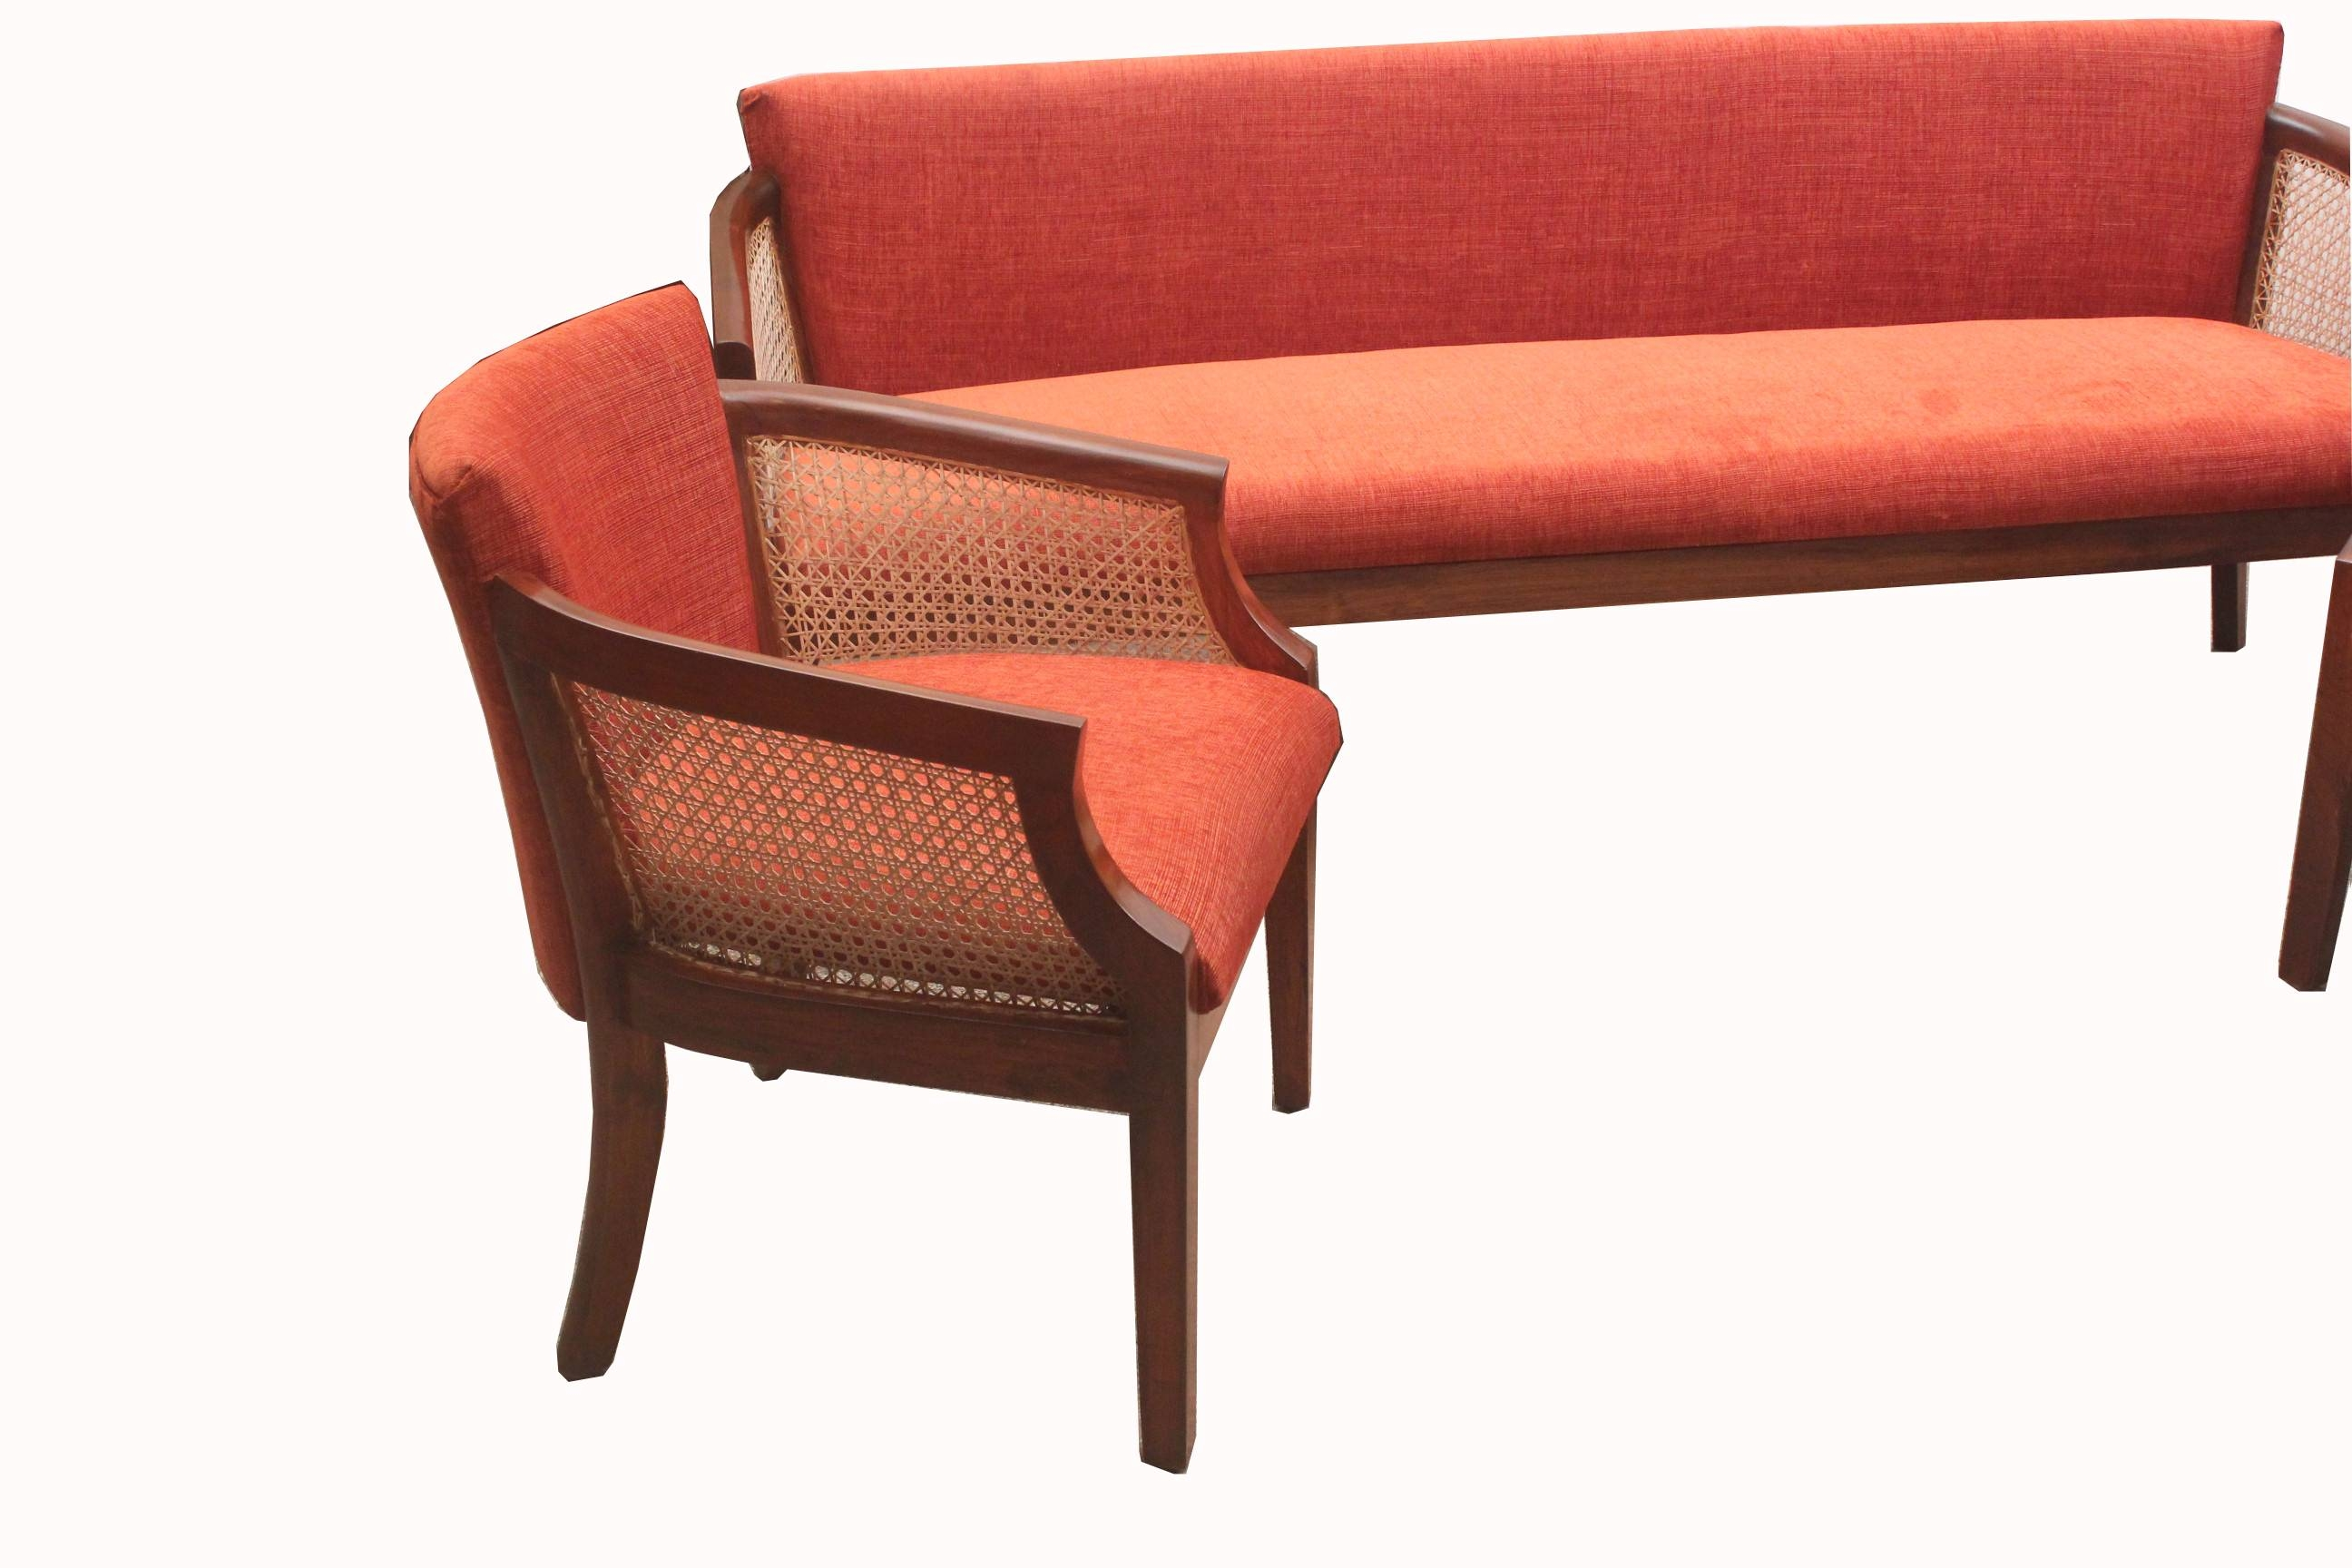 Teakwood Cushion Cane Sofa Set (Ws 98) Details | Bic Furniture India within Cane Sofas (Image 13 of 15)